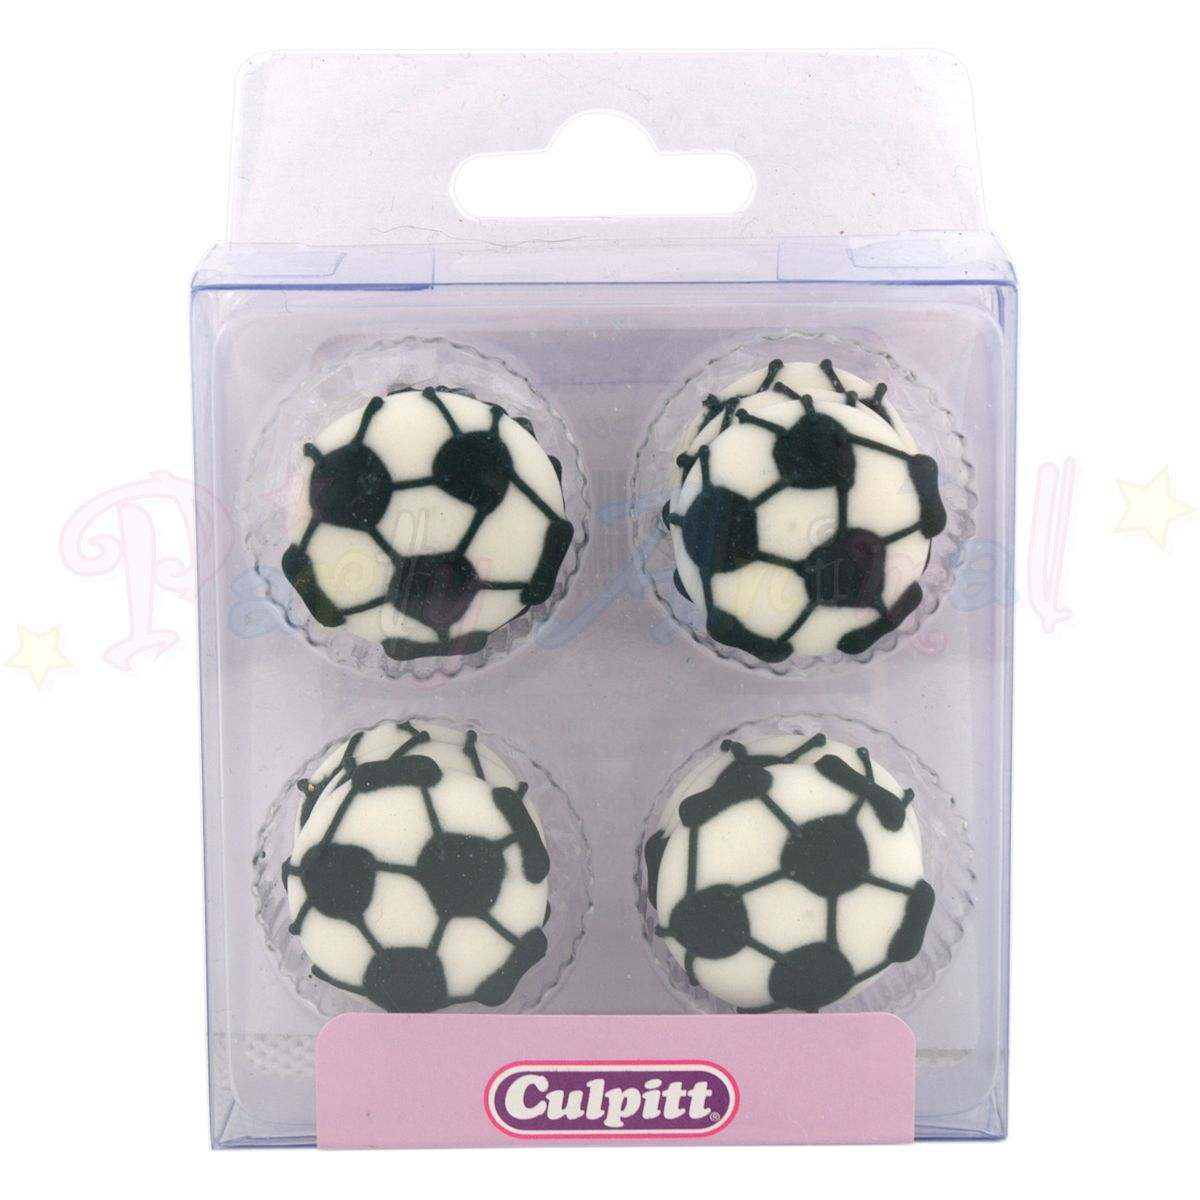 Culpitt Edible Piped Decorations FOOTBALL Cupcake Toppers